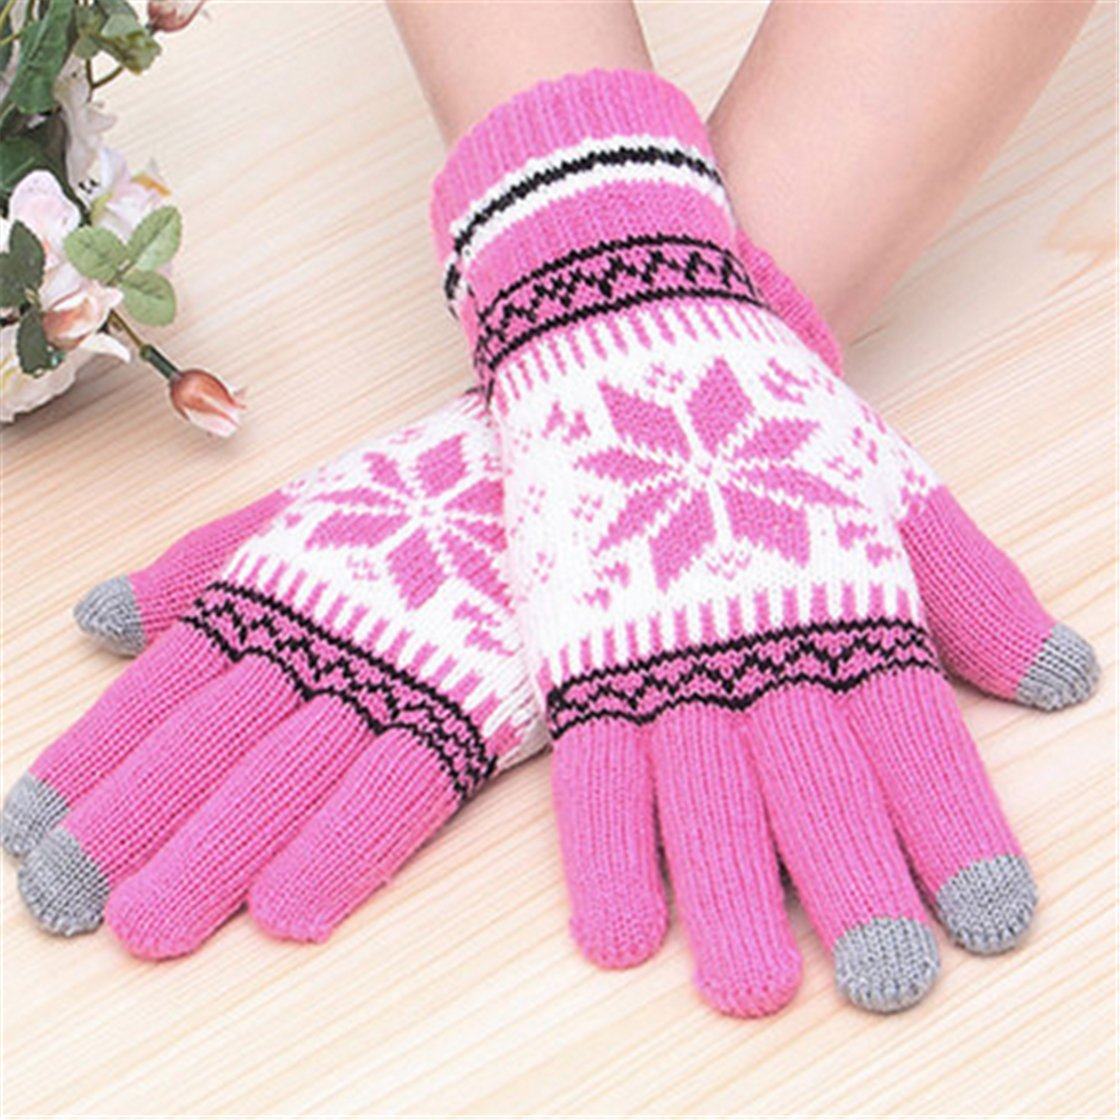 Touchscreen Wool Gloves $2.46.